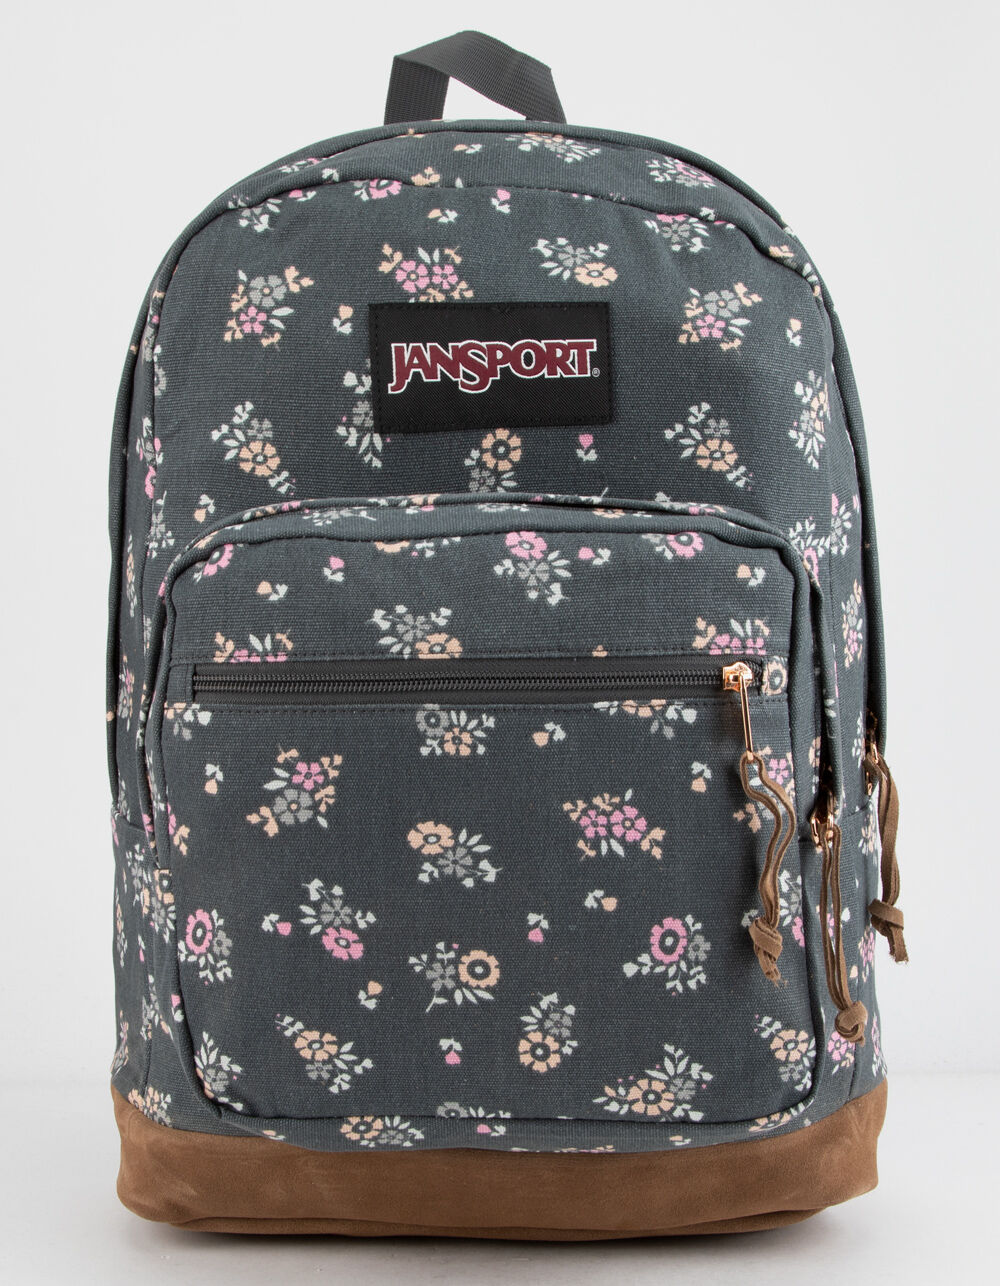 JANSPORT Right Pack Expressions Tiny Blooms Backpack